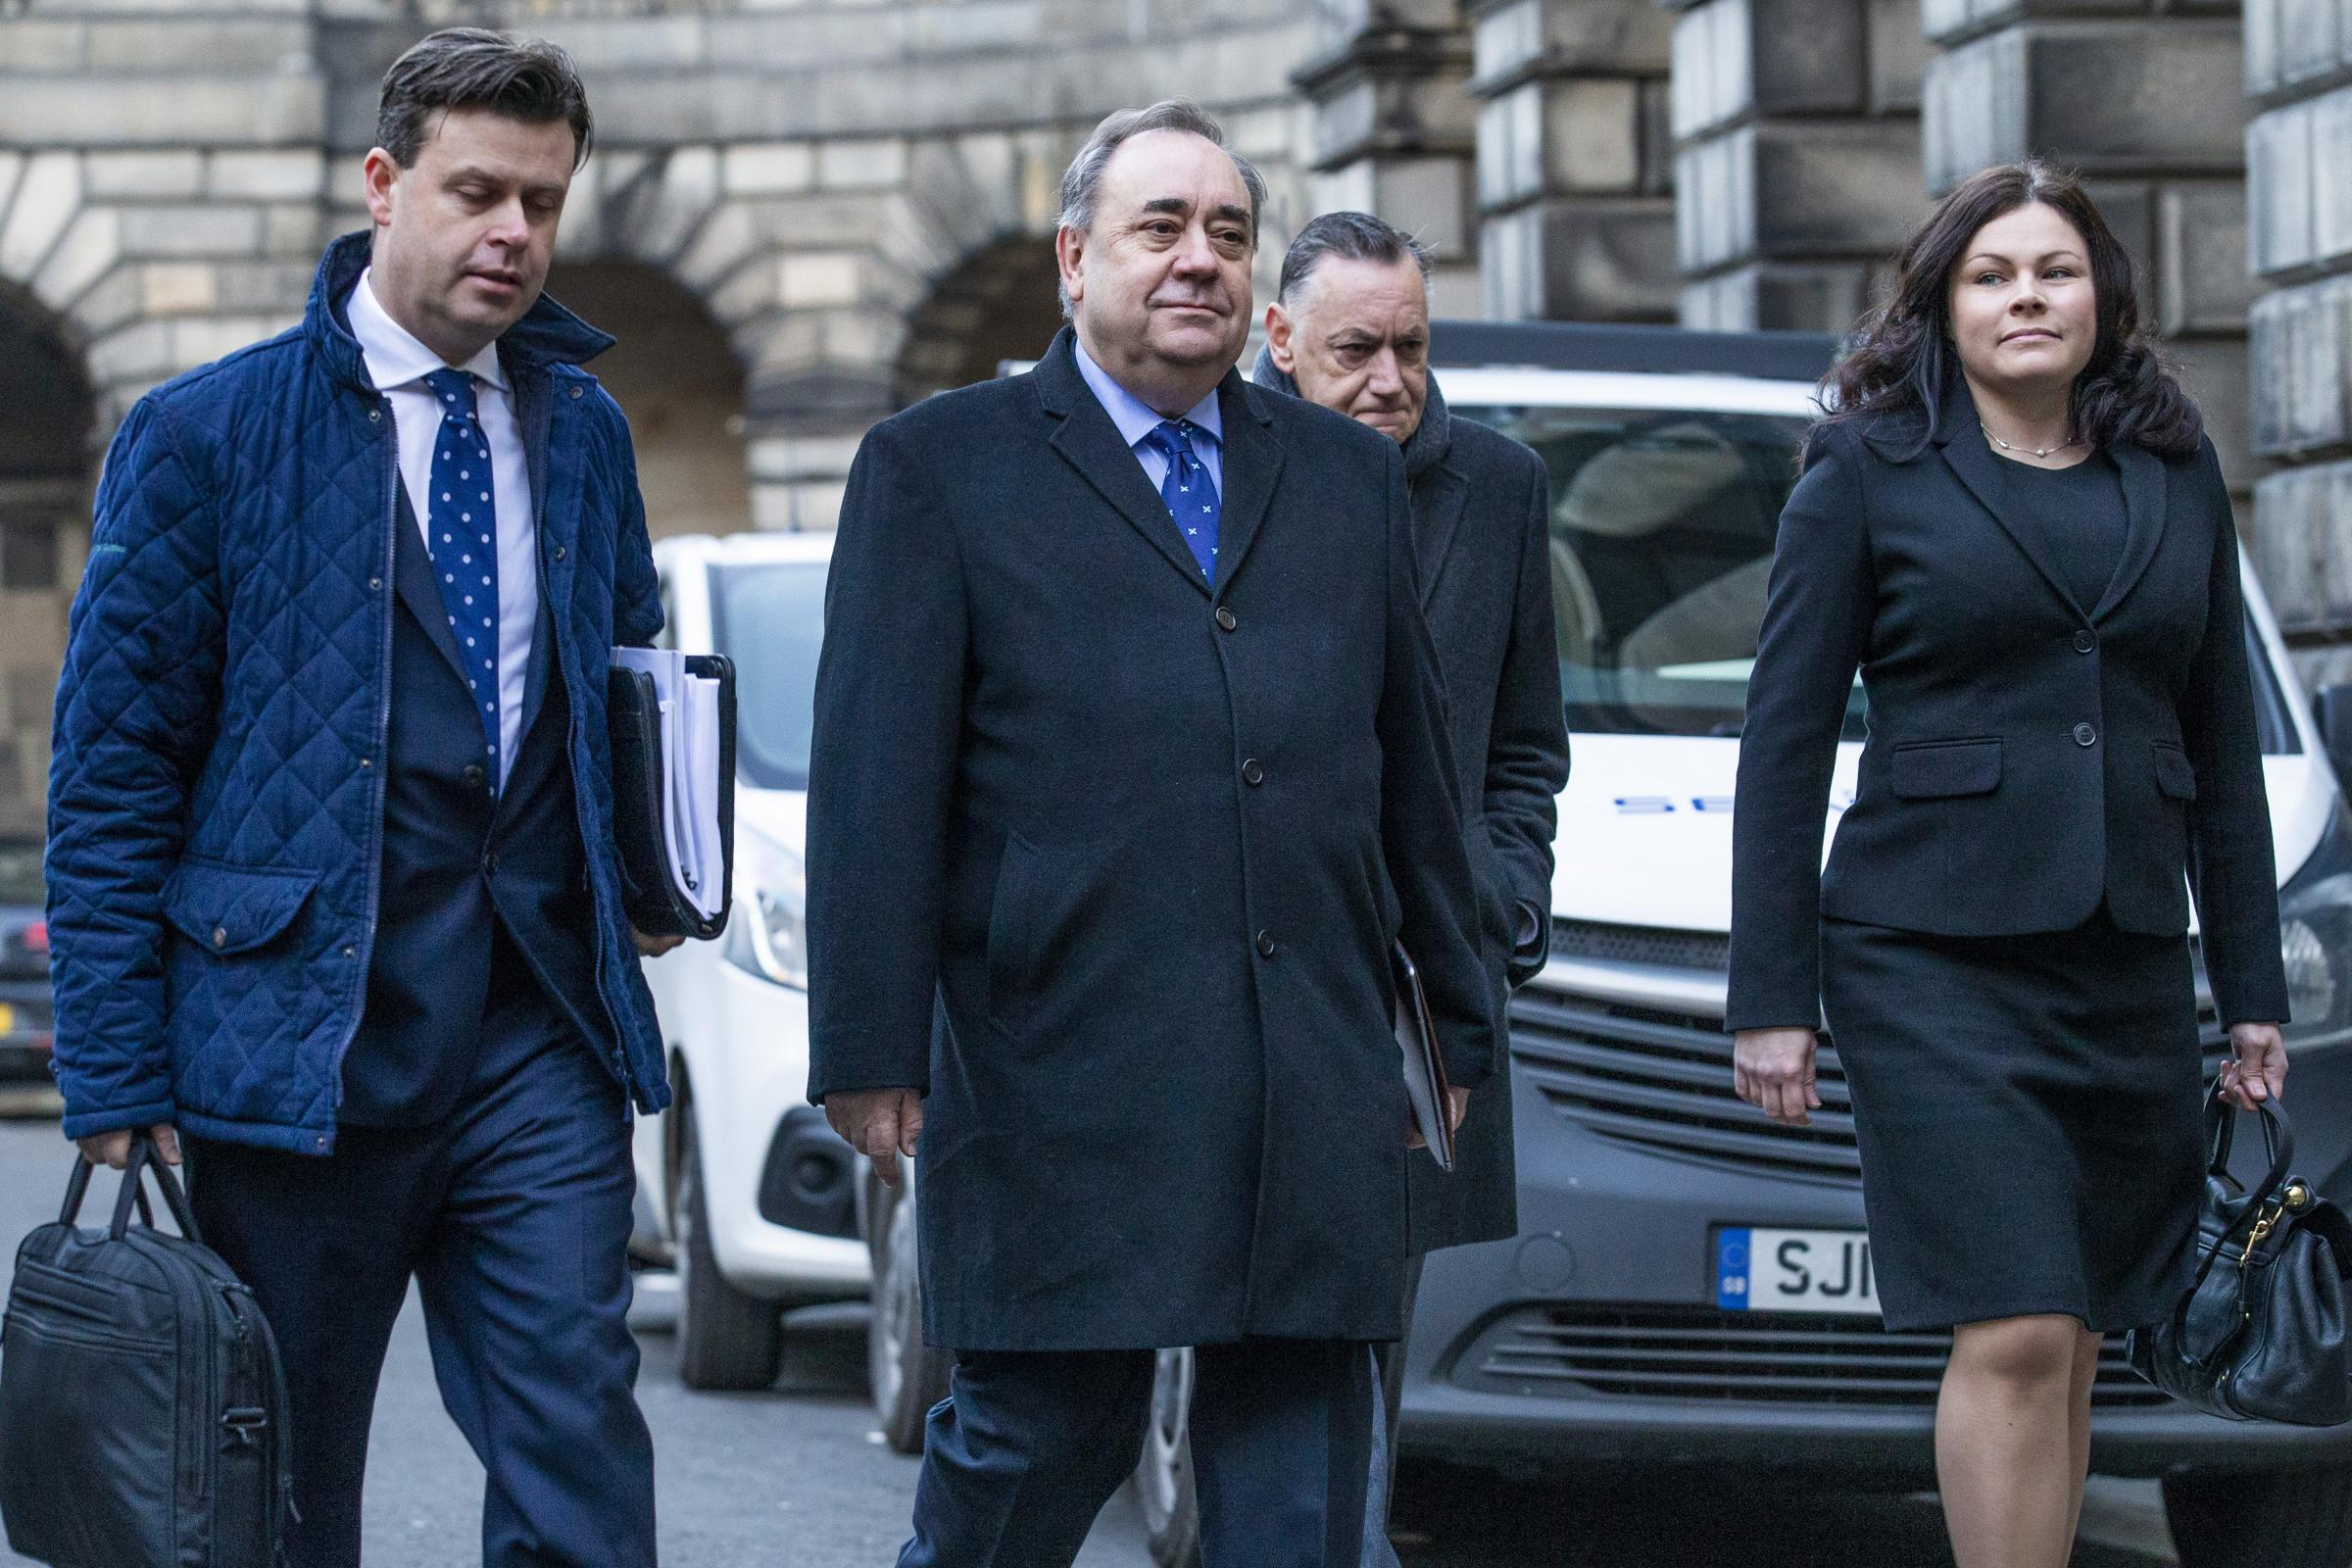 Alex Salmond arriving at the Court of Session in Edinburgh